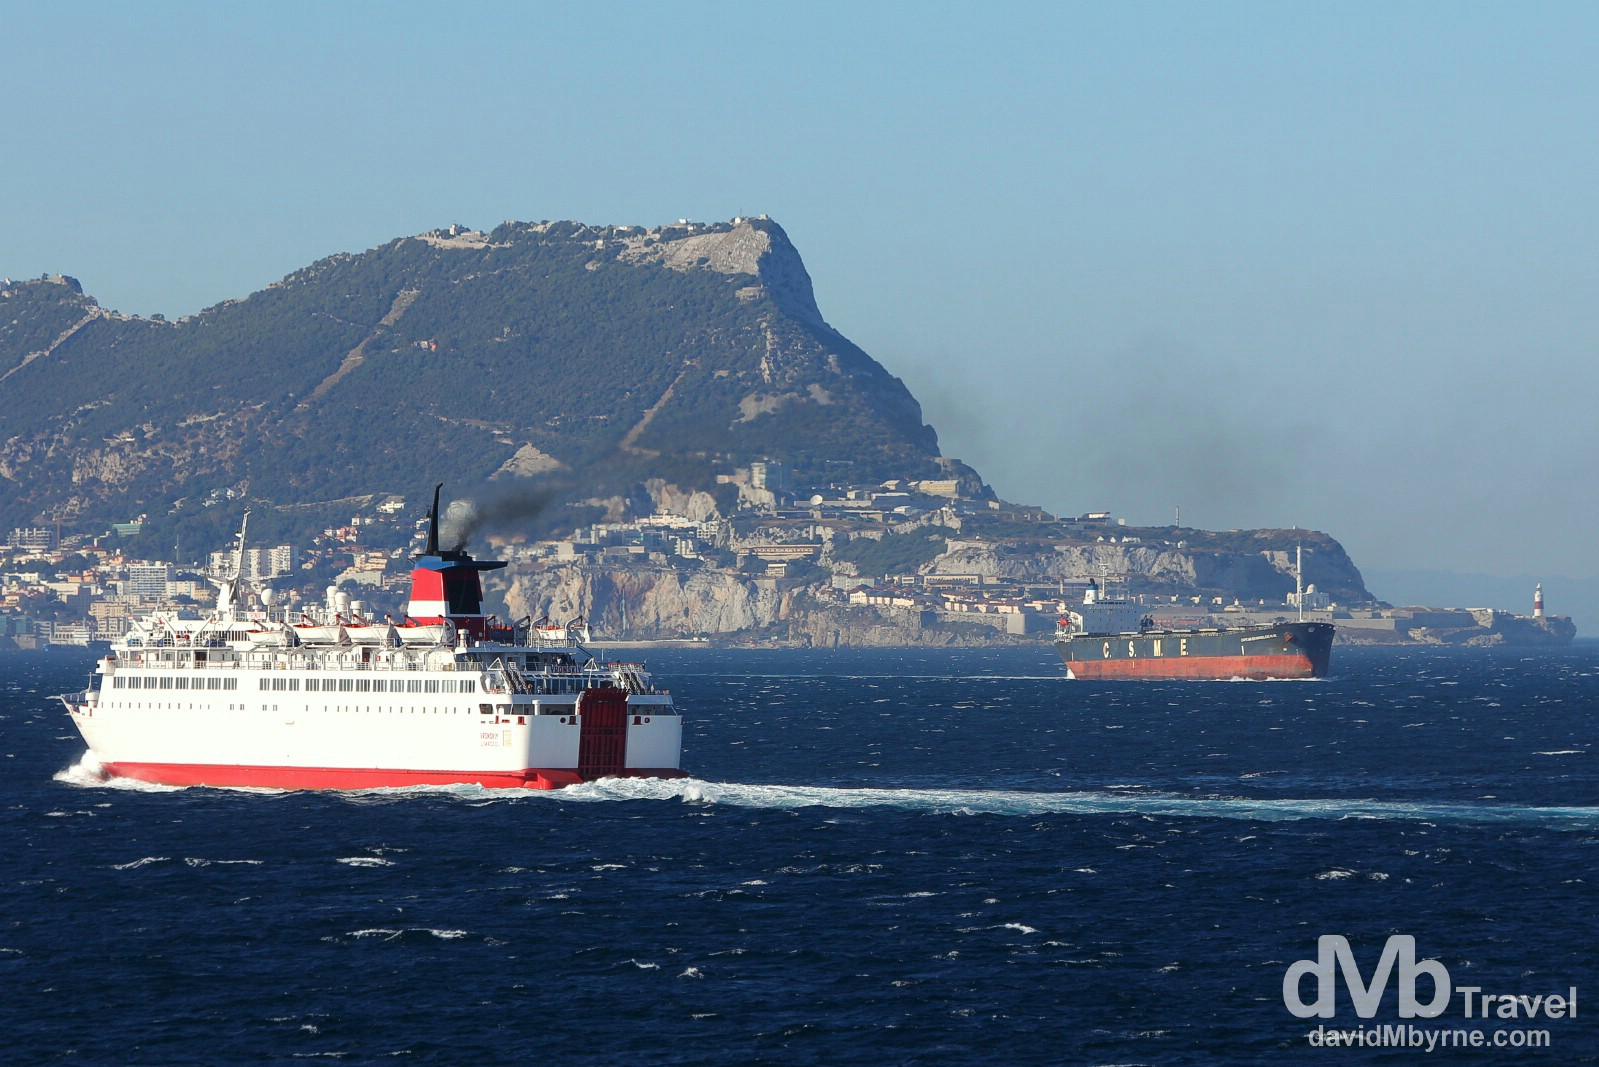 The High Seas || Tangier, Morocco to Algeciras, Spain